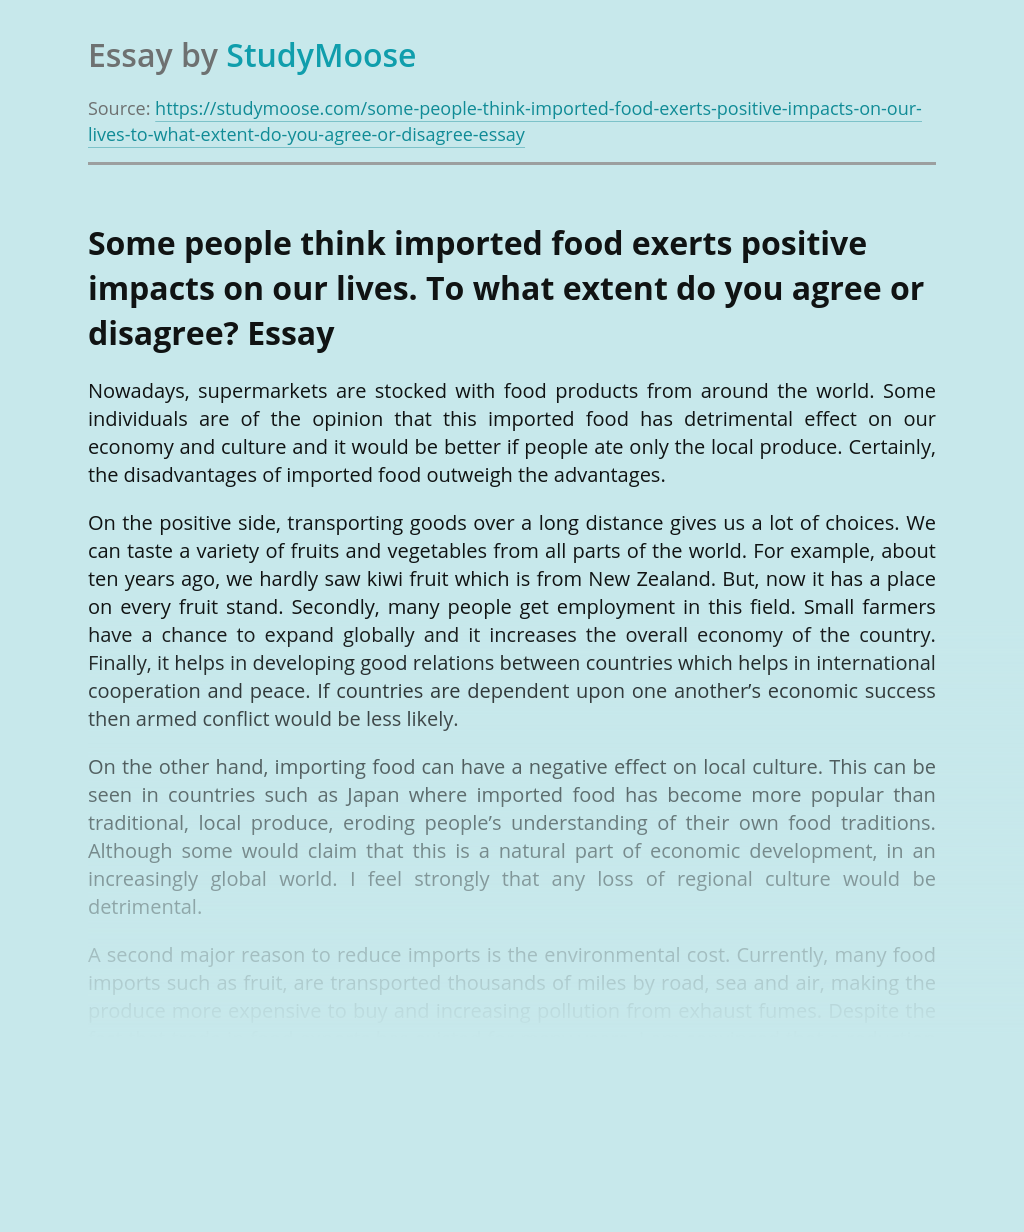 Some people think imported food exerts positive impacts on our lives. To what extent do you agree or disagree?